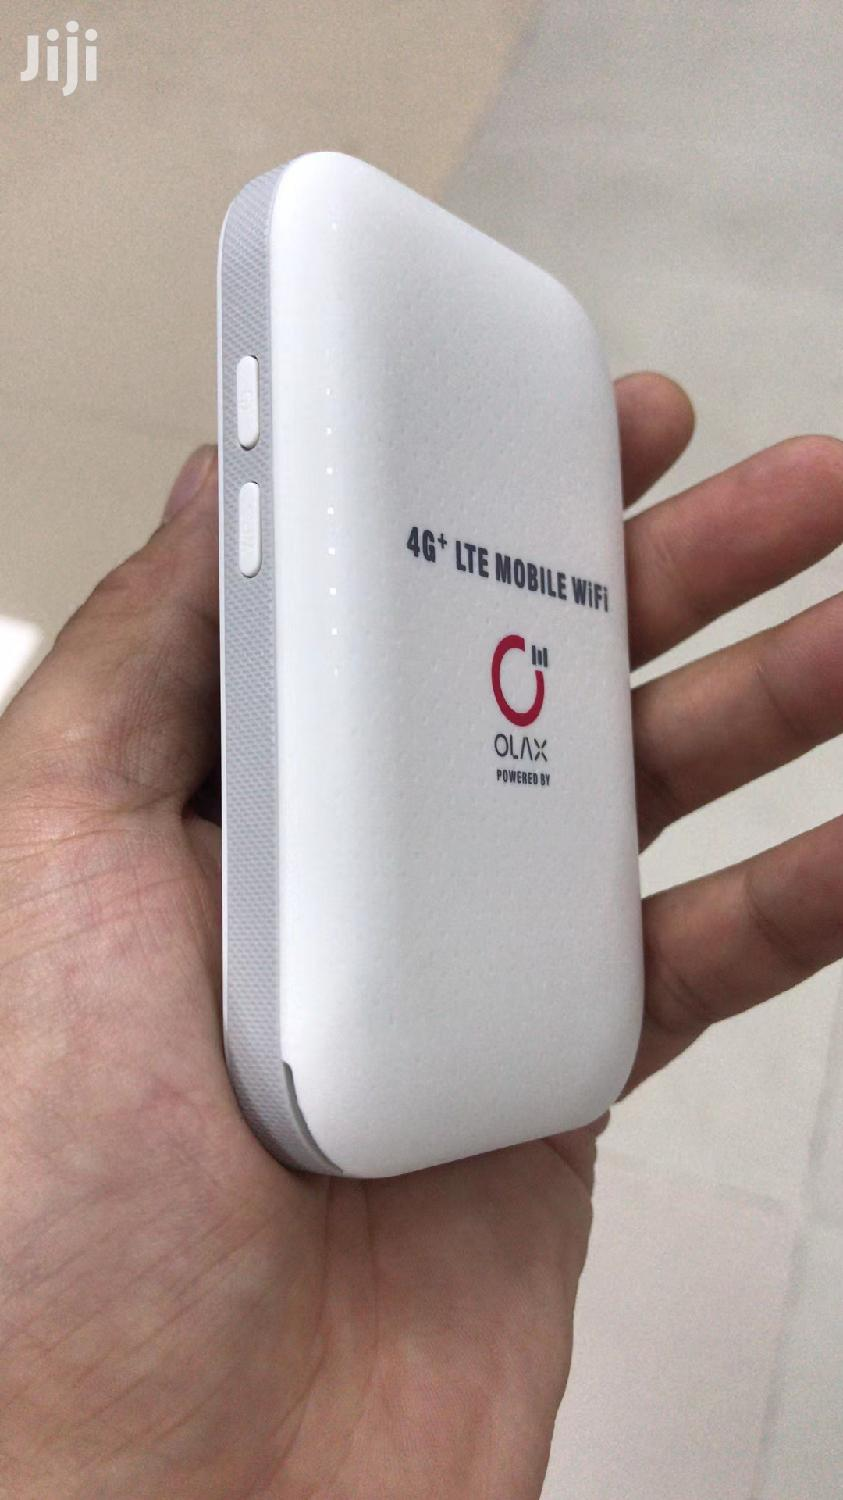 Factory Unlocked 4G+ Olax Mifi With Lcd Screen | Networking Products for sale in Kampala, Central Region, Uganda